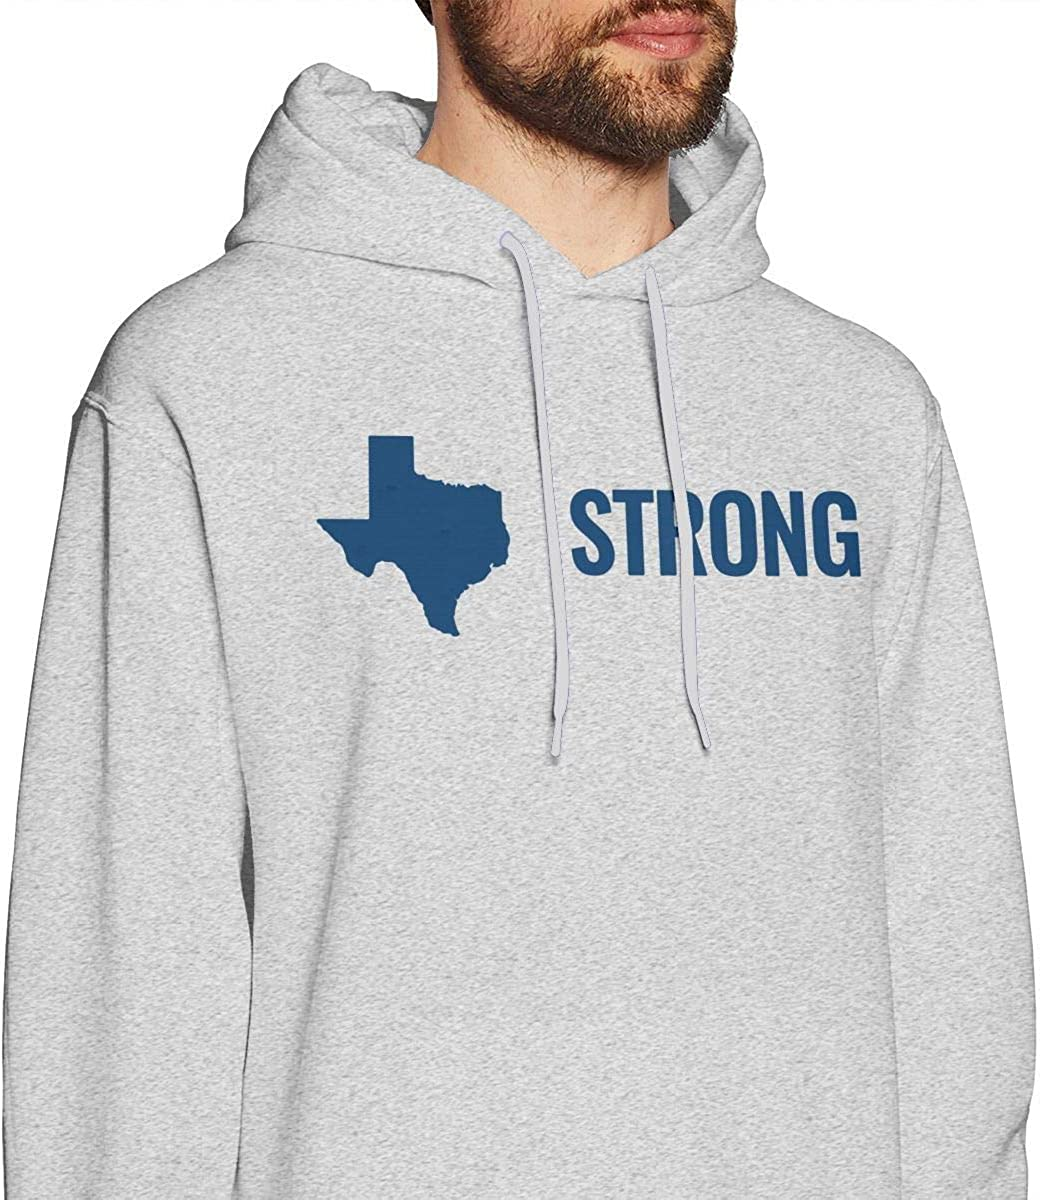 Mens Hurricane Harvey Texas Strong Hooded Sweatshirt Casual Athletic Pullover T-Shirt Gray